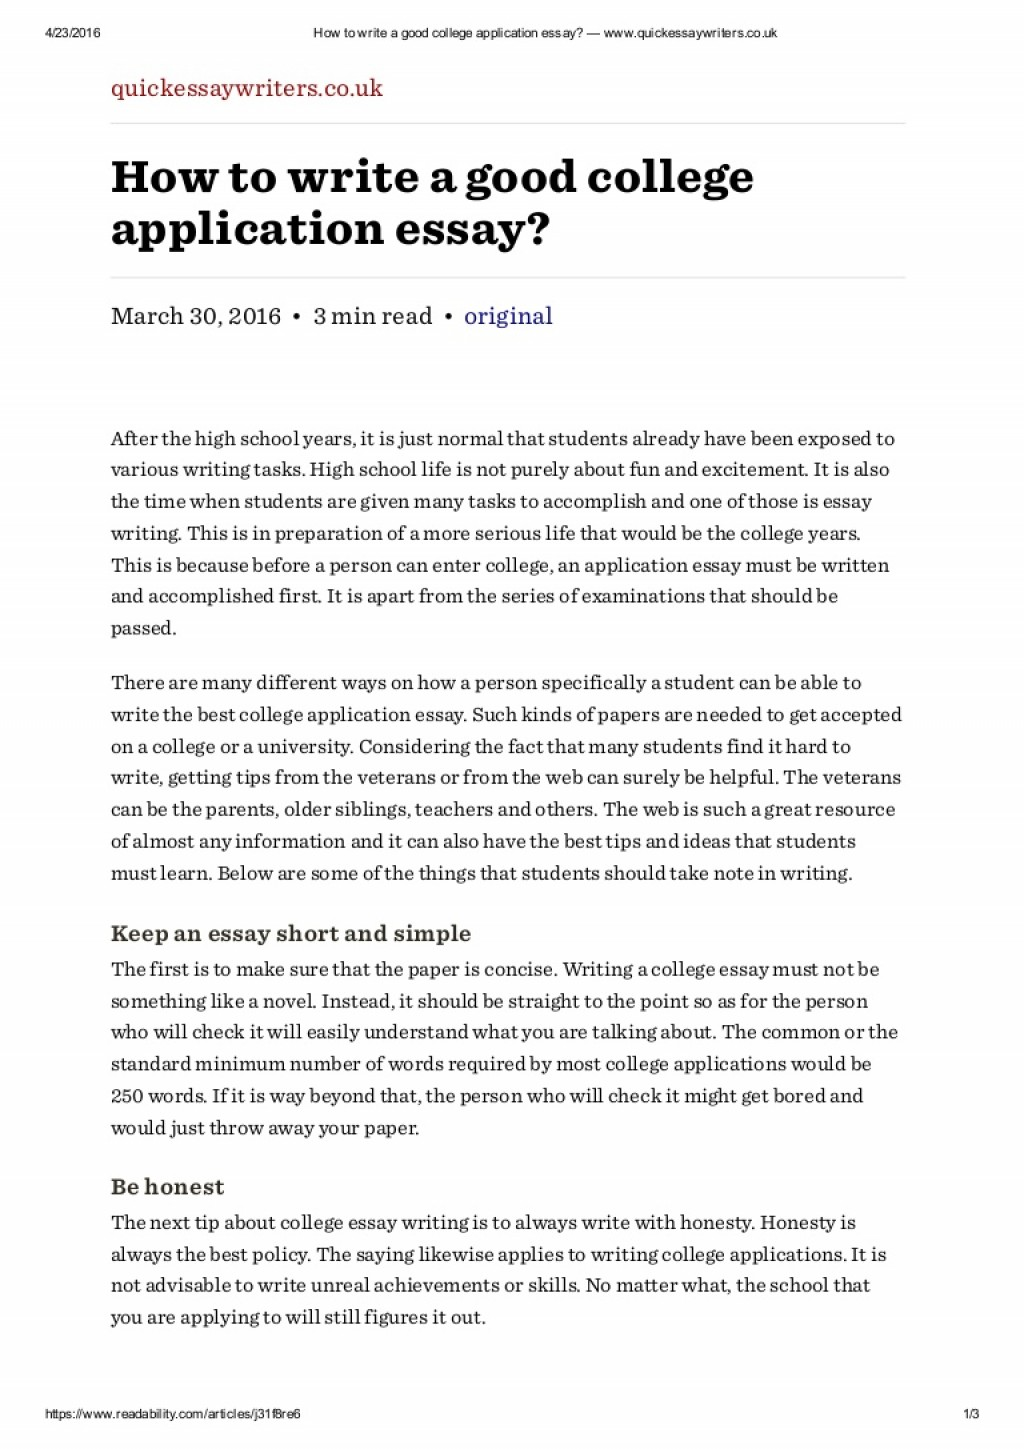 009 Howtowriteagoodcollegeapplicationessaywww Thumbnail Essay Example Writing College Rare A Application Topics To Write On Tips For About Yourself Large